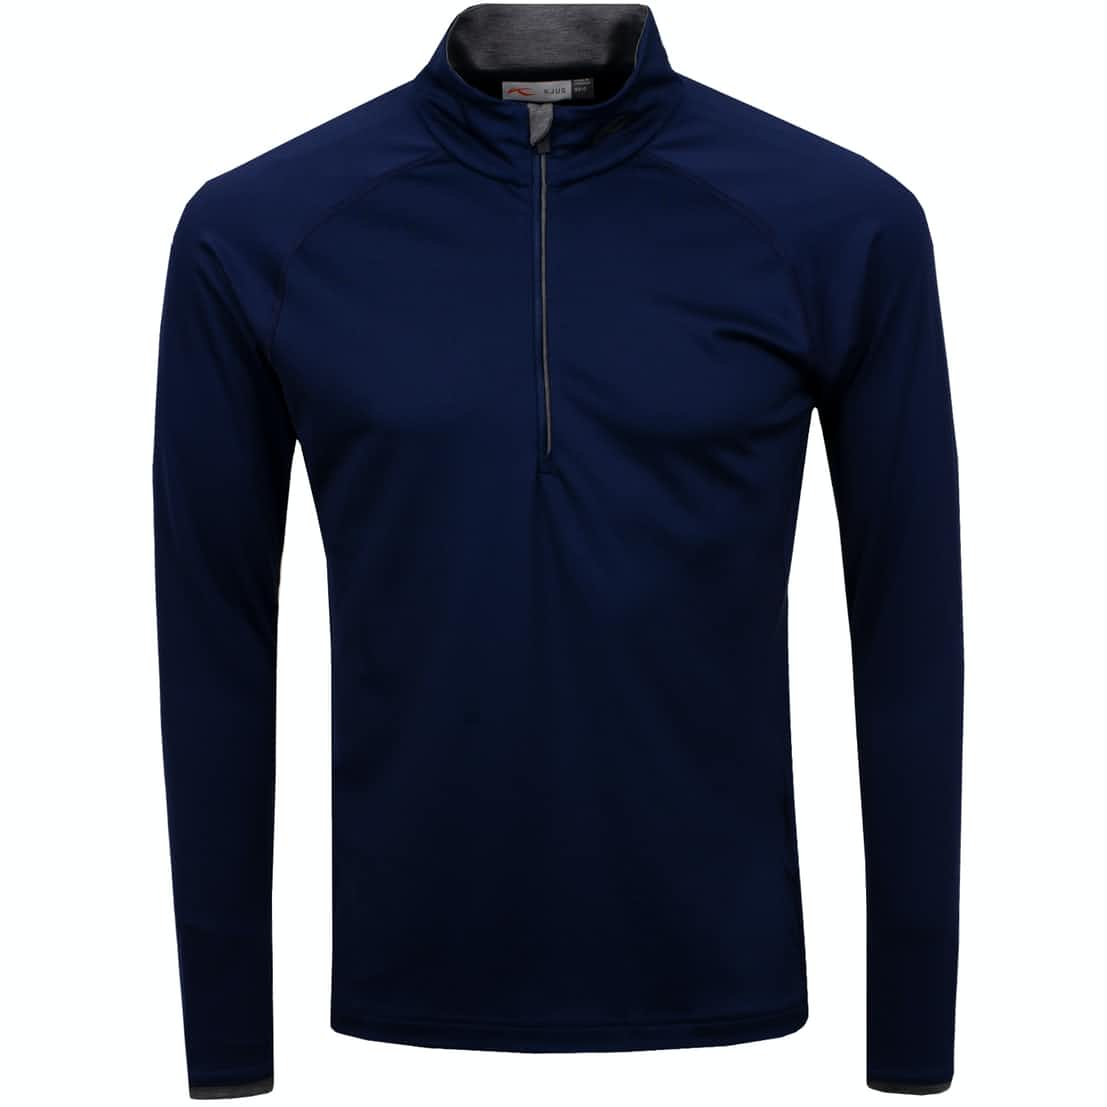 Feel Half Zip Atlanta Blue - 2020